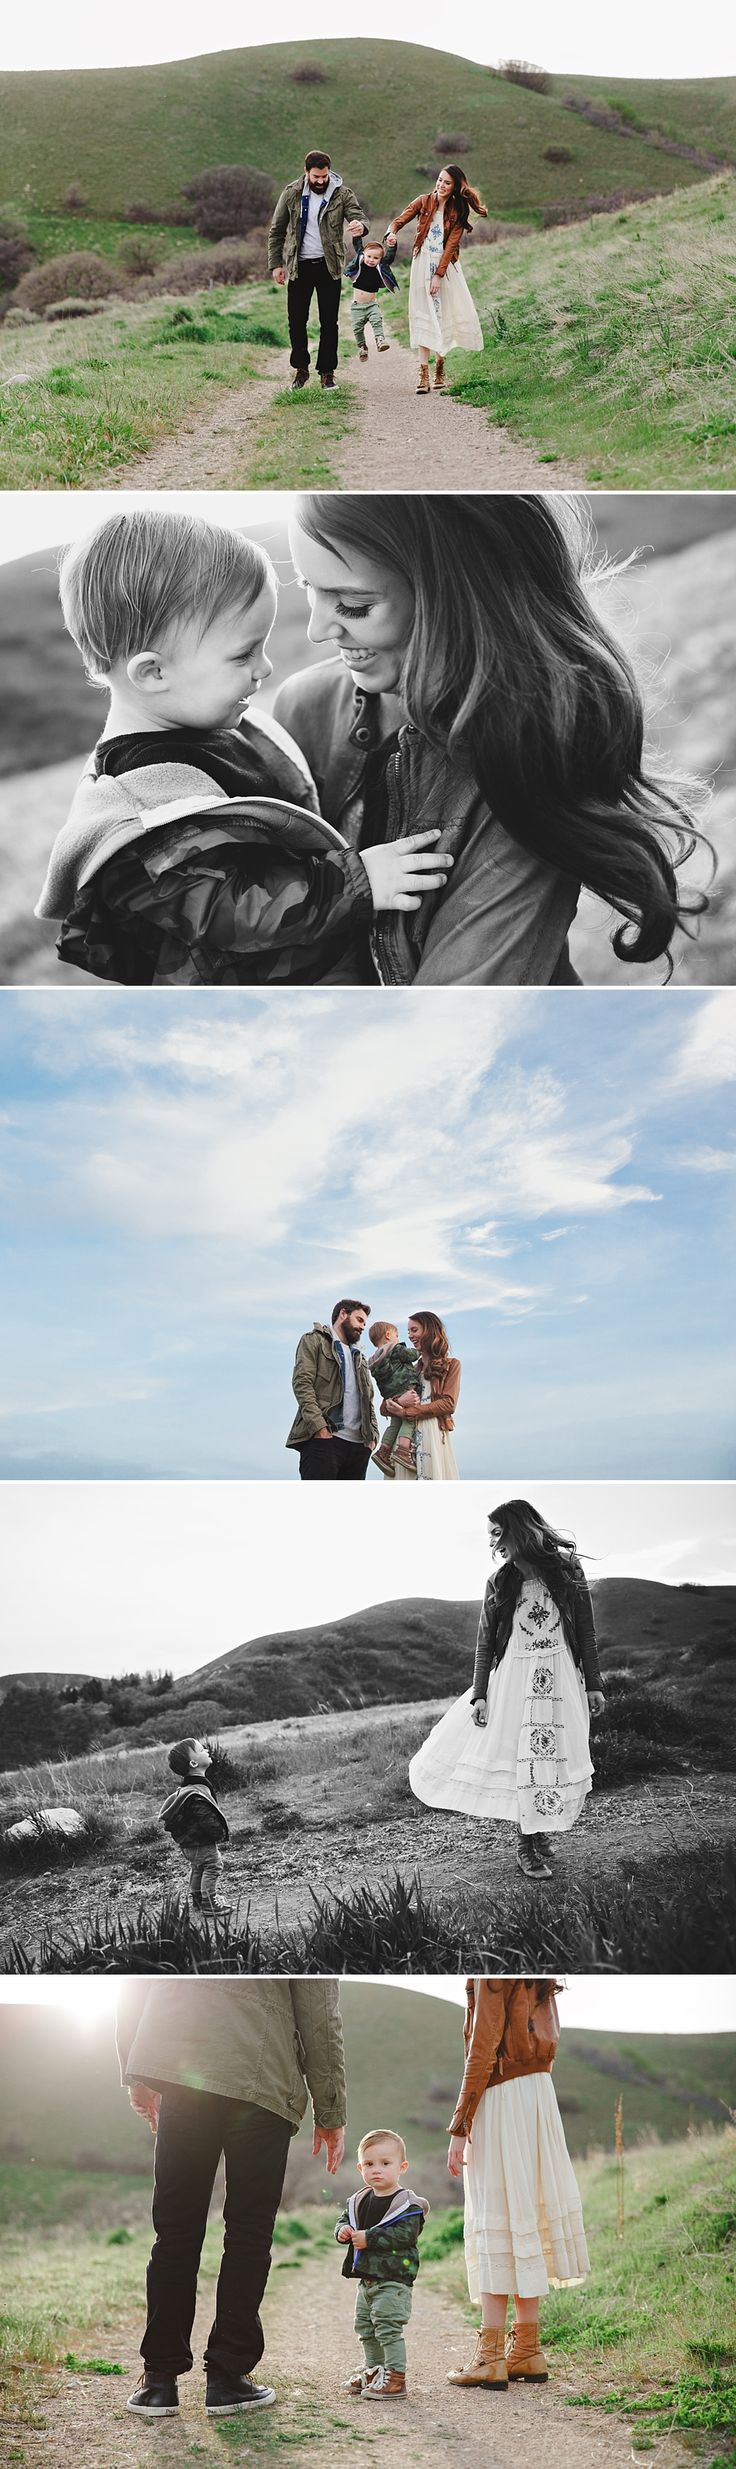 Summer Murdock Photography Salt Lake City Photographer. I want these photos one day!